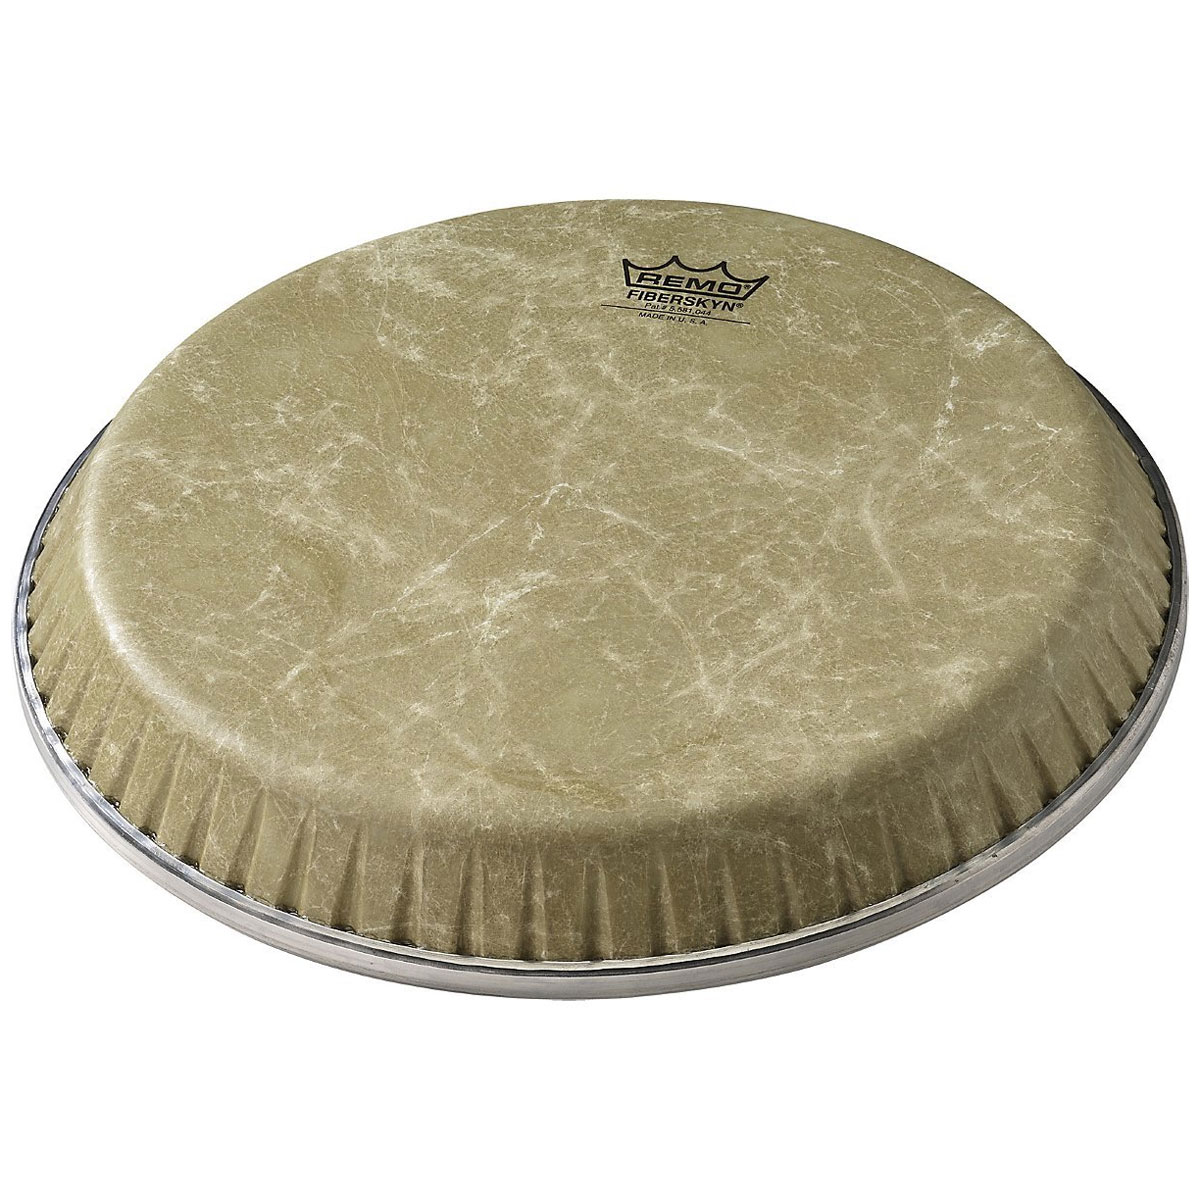 "Remo 11.75"" Symmetry Fiberskyn Conga Drum Head (D4 Collar)"